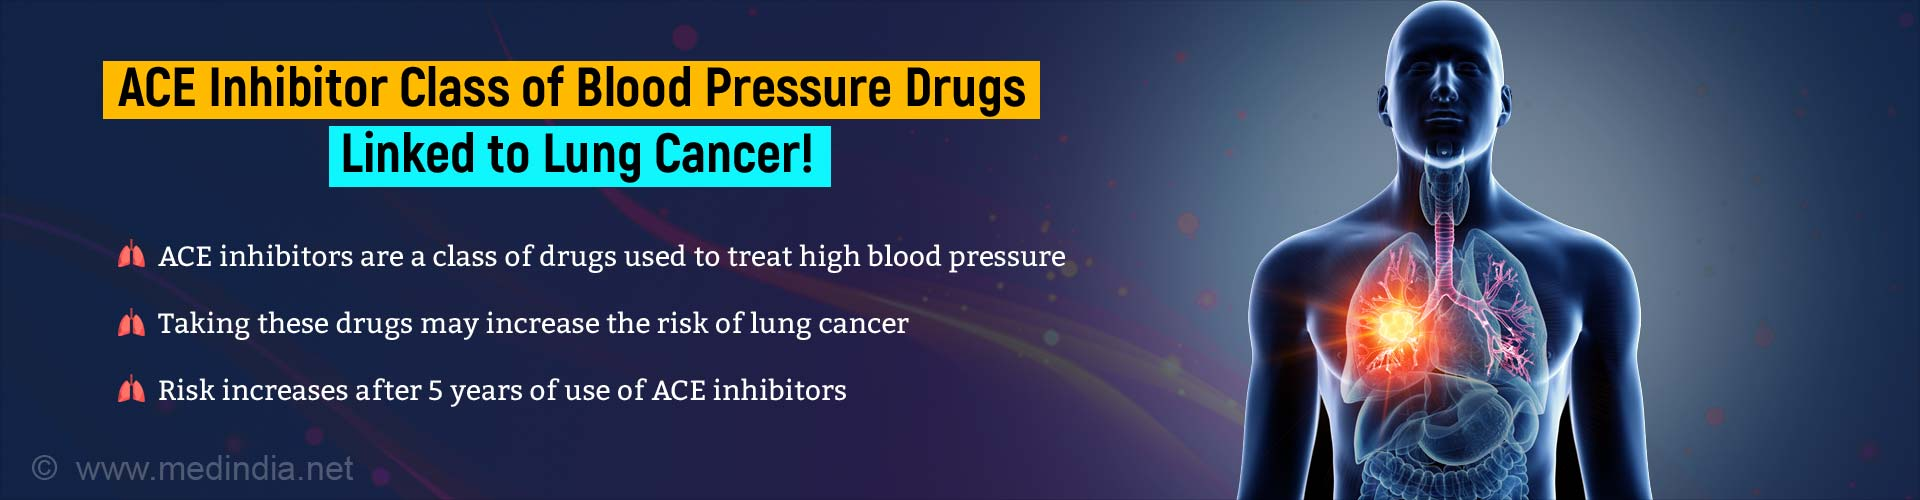 Common Blood Pressure Tablets May Increase Risk of Lung Cancer